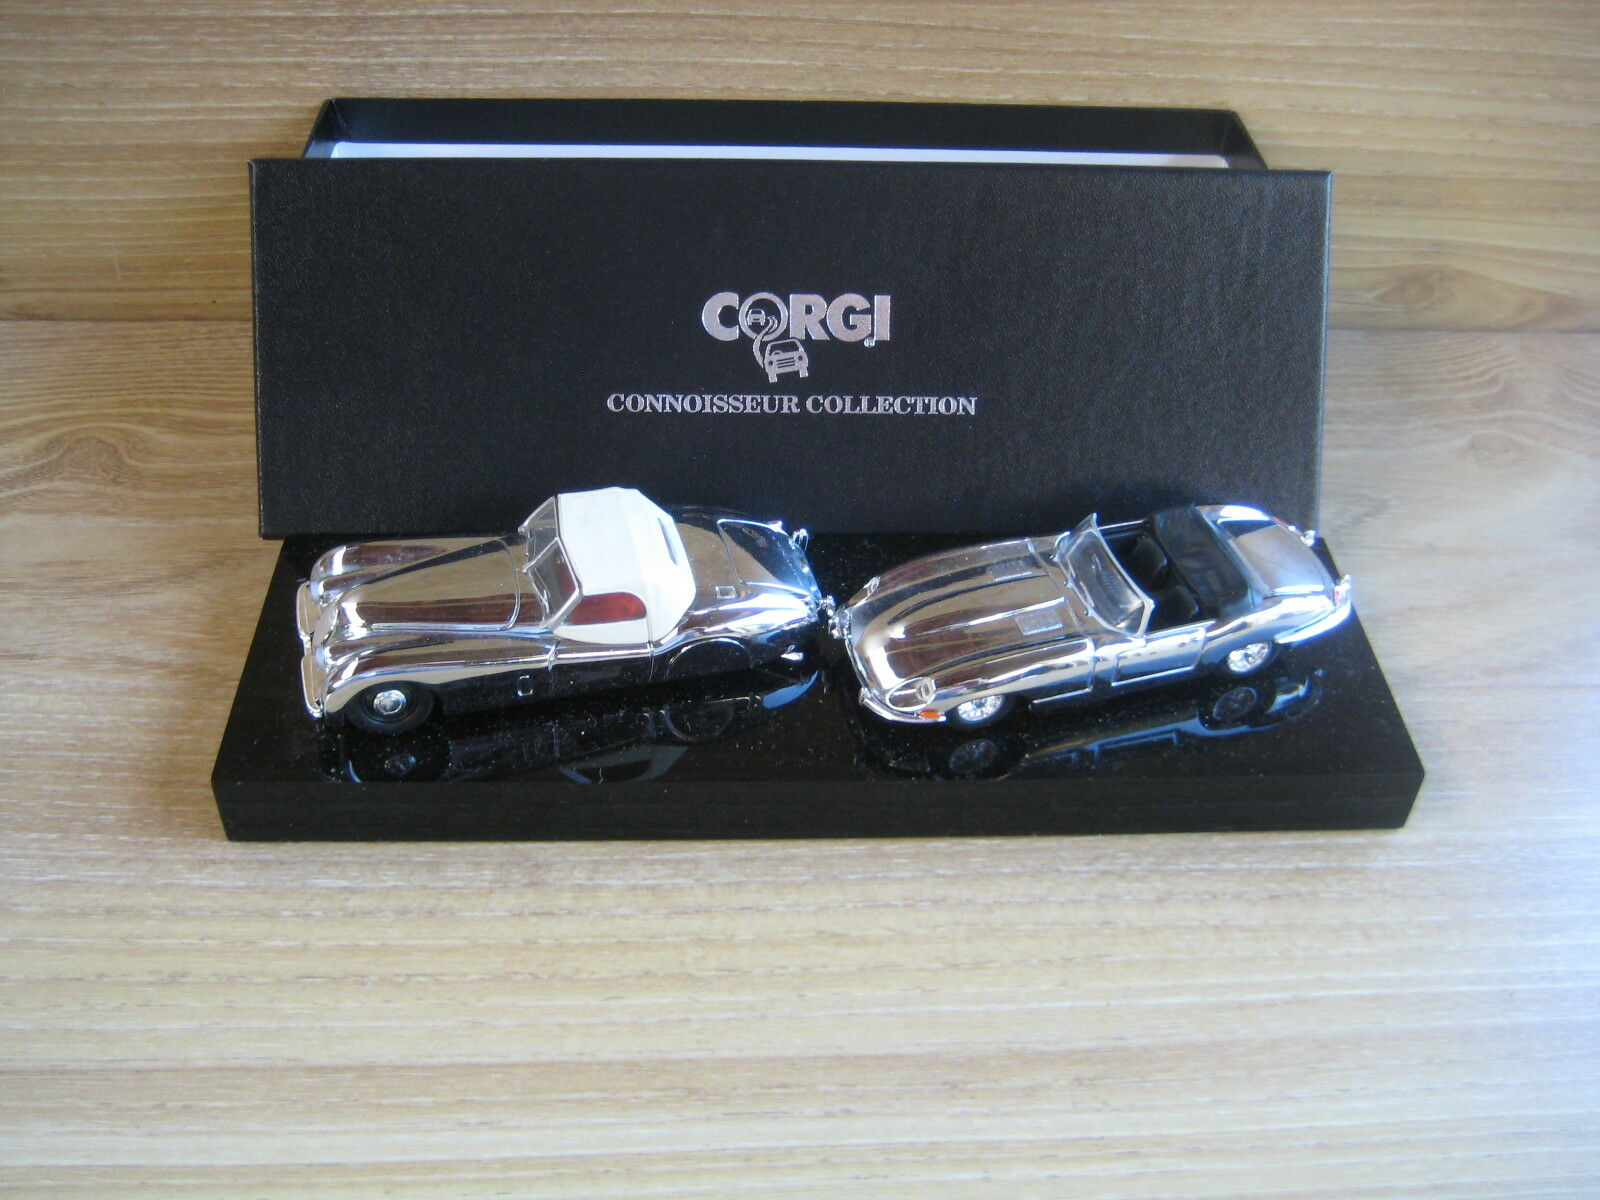 CORGI CONNOISSEUR COLLECTION   JAGUAR XK120 & E TYPE  SET  CHROME PLATED